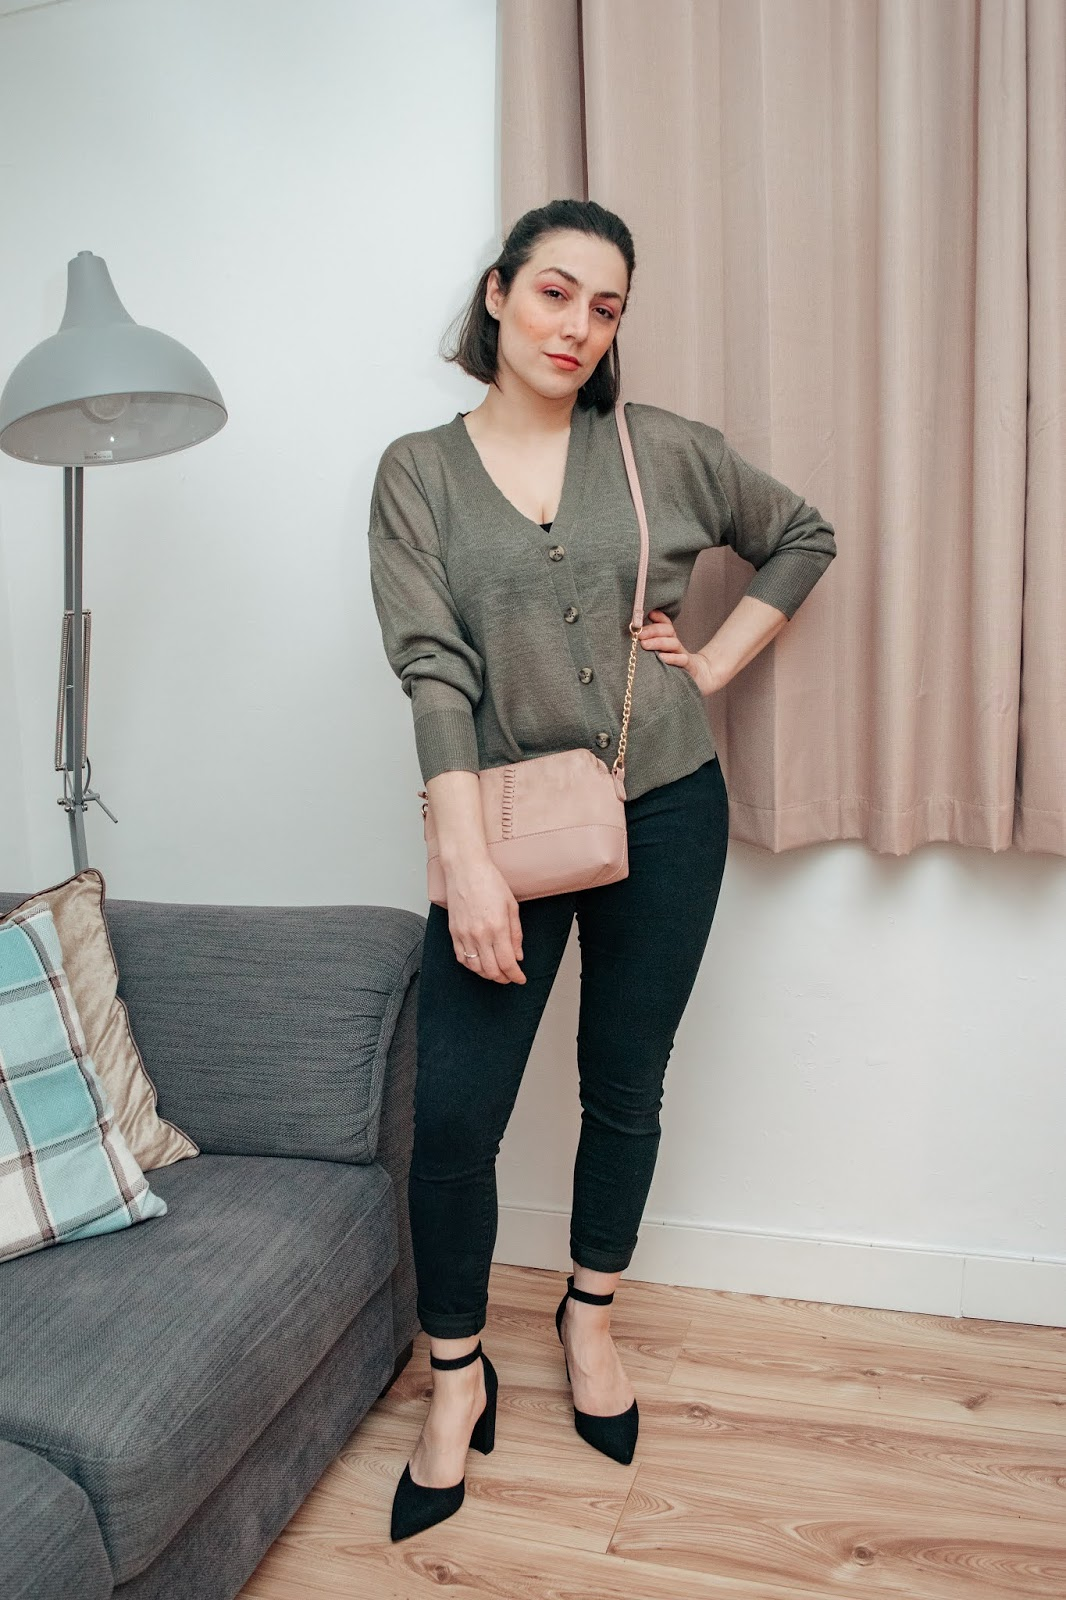 Standing wearing a khaki cardigan, black jeans and styling a pink cross body bag.